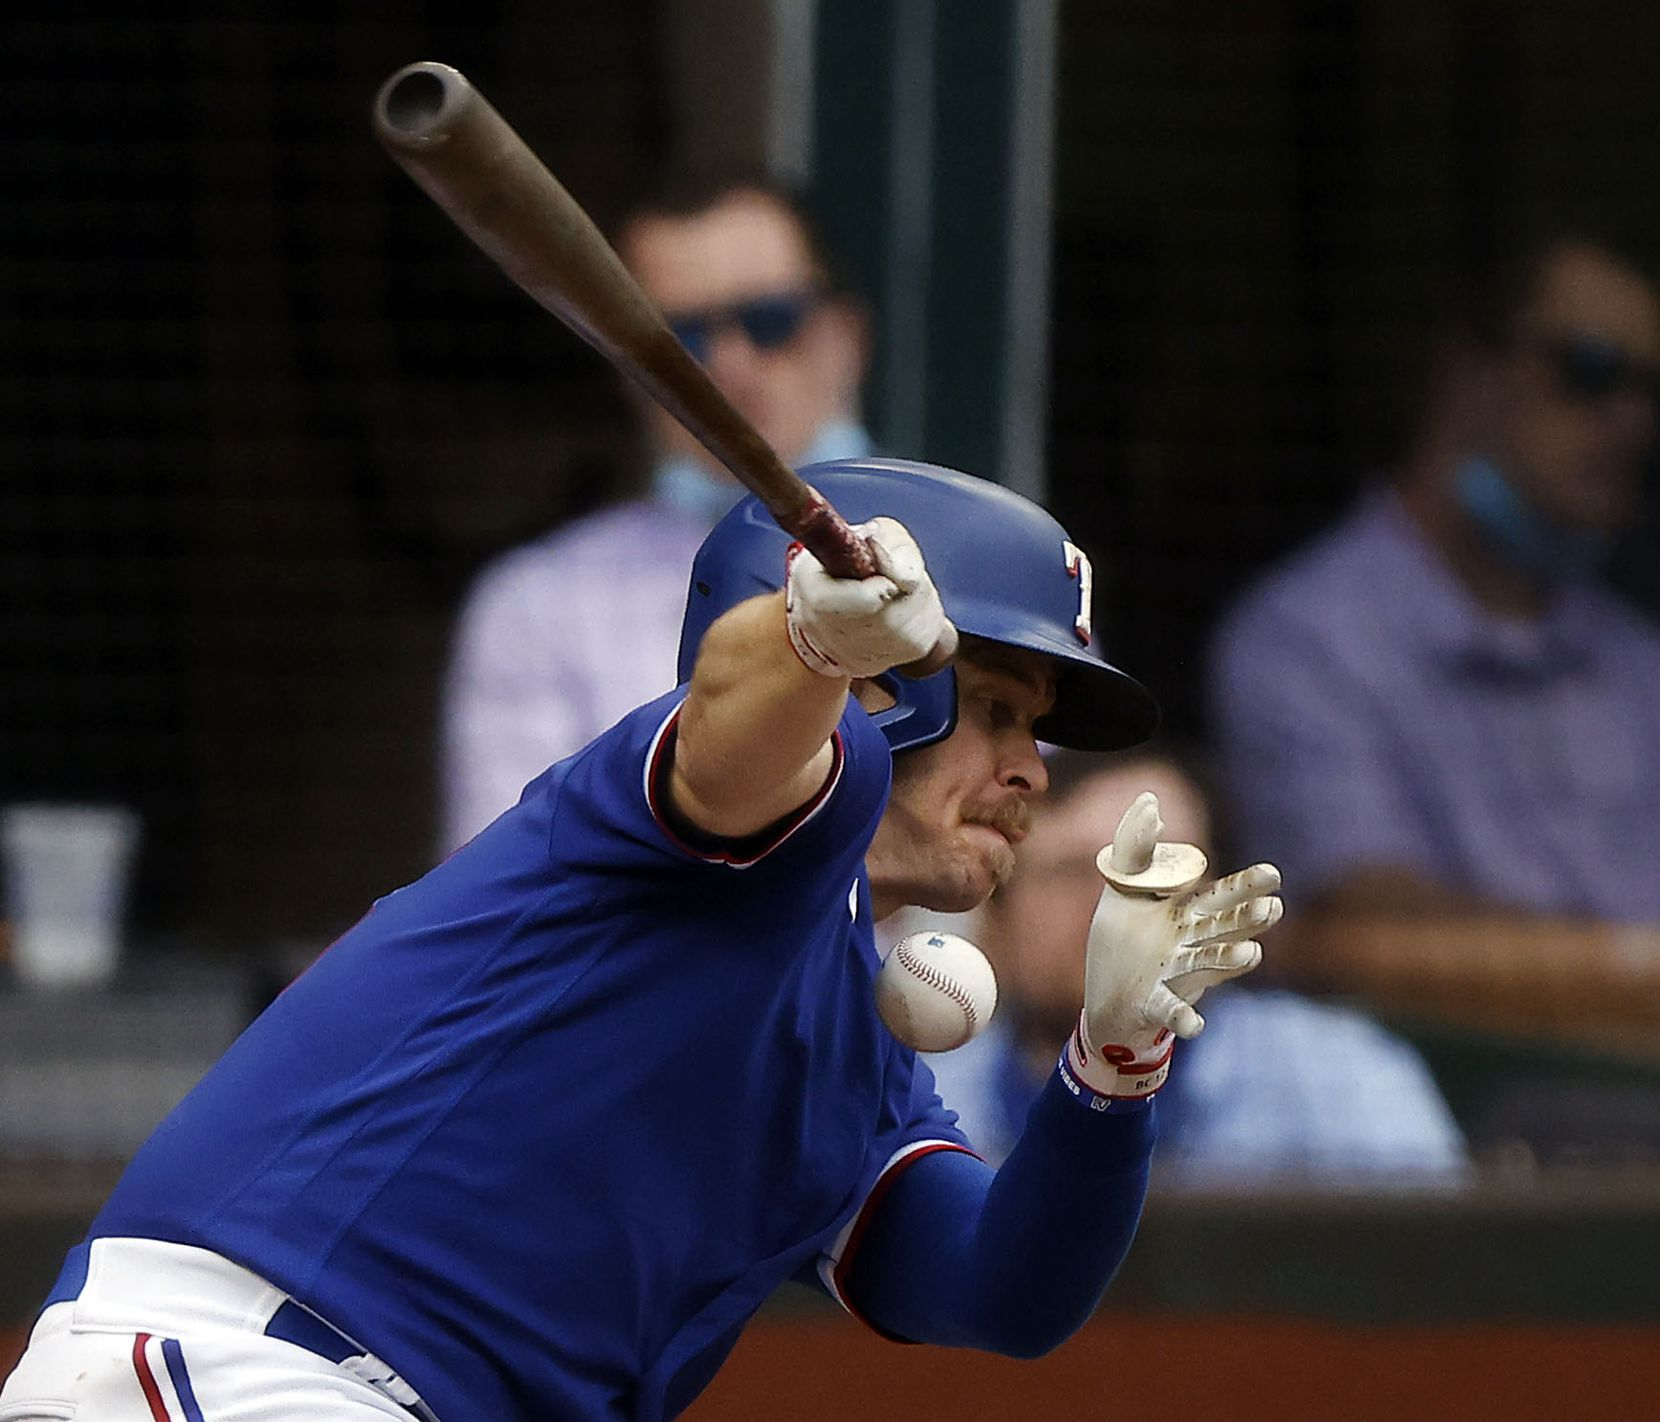 Texas Rangers batter Brock Holt (16) fouls a ball off his chest in the first inning against the Milwaukee Brewers at Globe Life Field in Arlington, Texas. The teams were playing in an exhibition game, Tuesday, March 30, 2021. (Tom Fox/The Dallas Morning News)